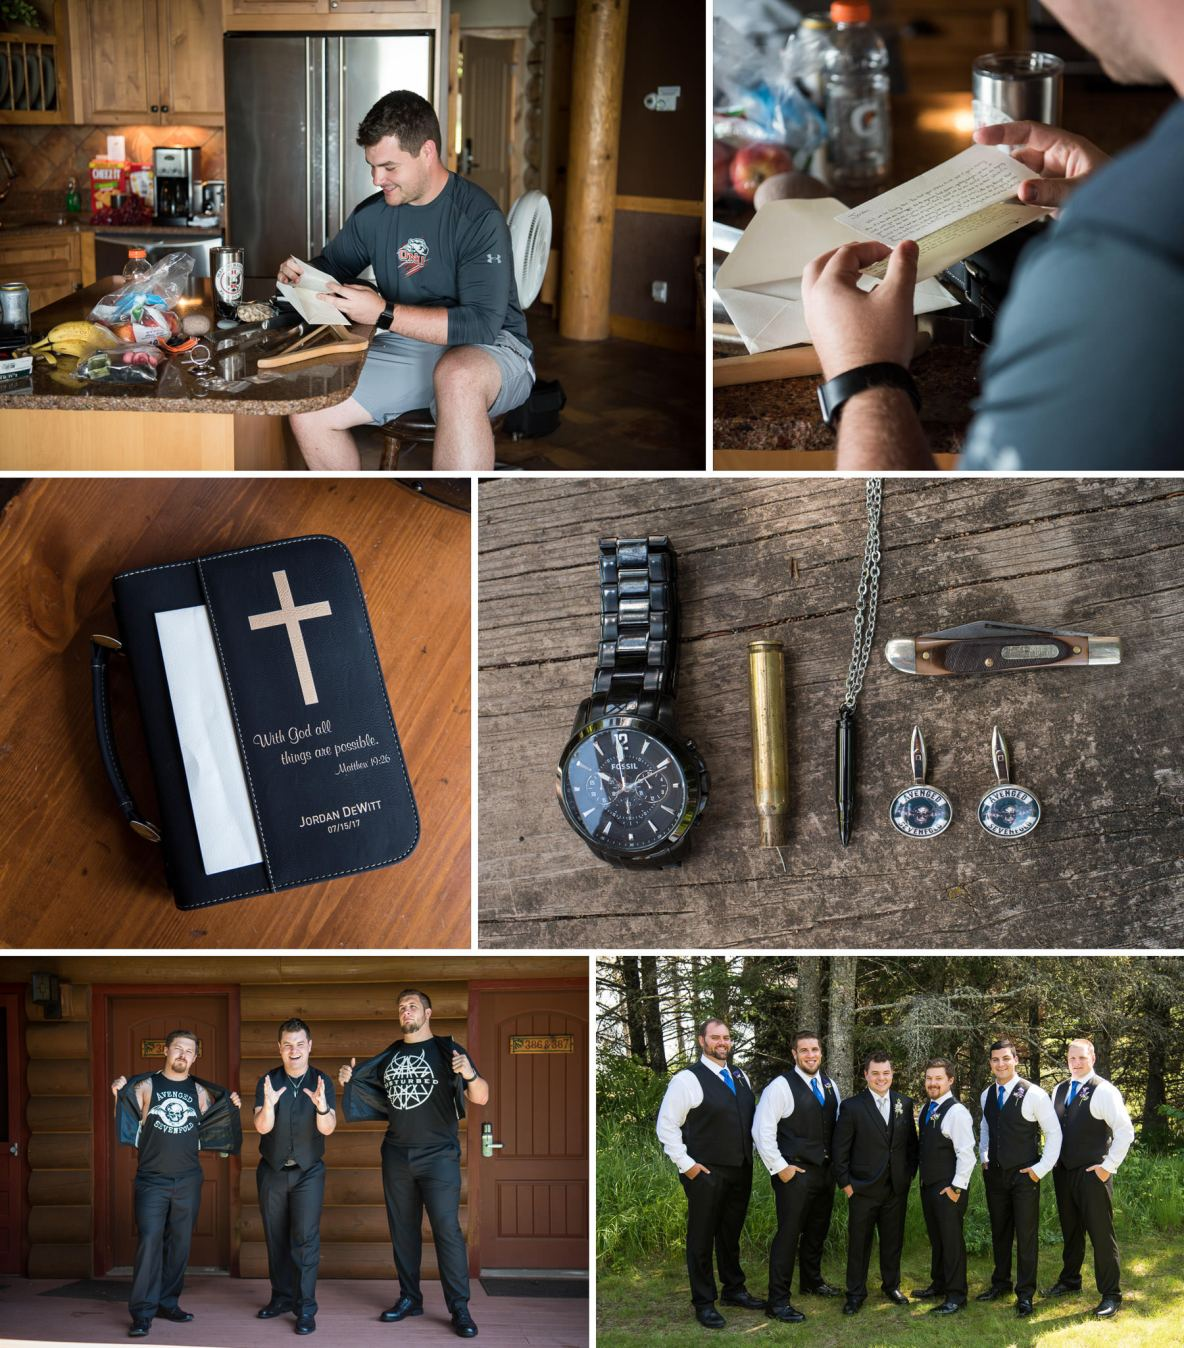 Groomsmen photo outside, as well as photos of sentimental items, including grandfather's pocketknife and shell casing.